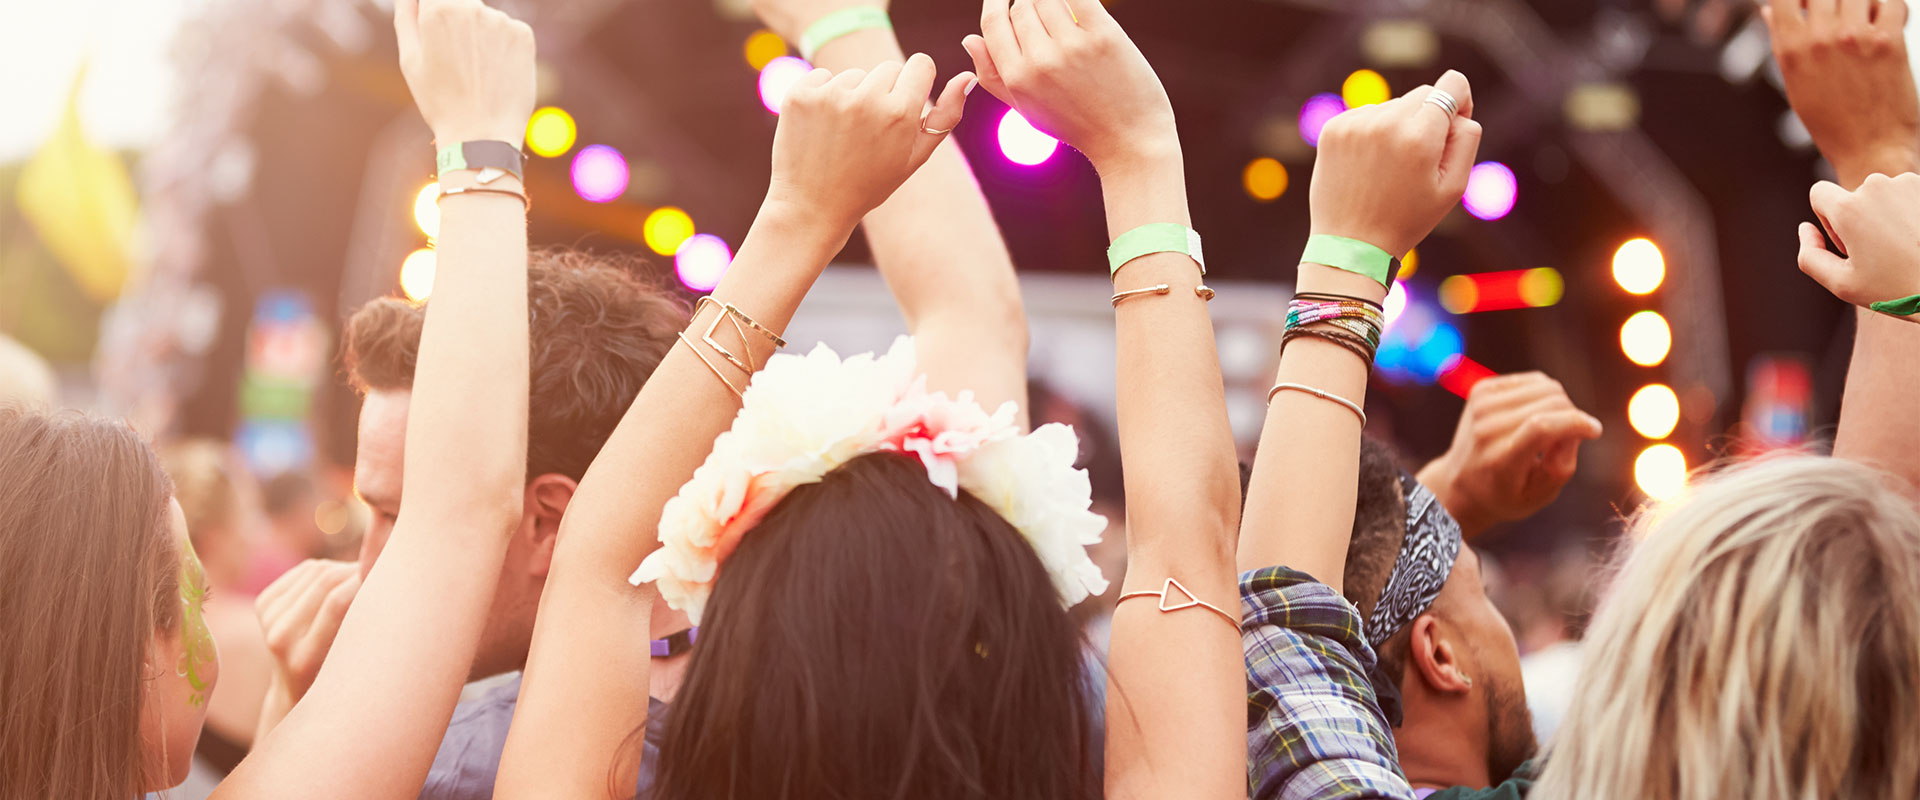 ultimate festival beauty essentials